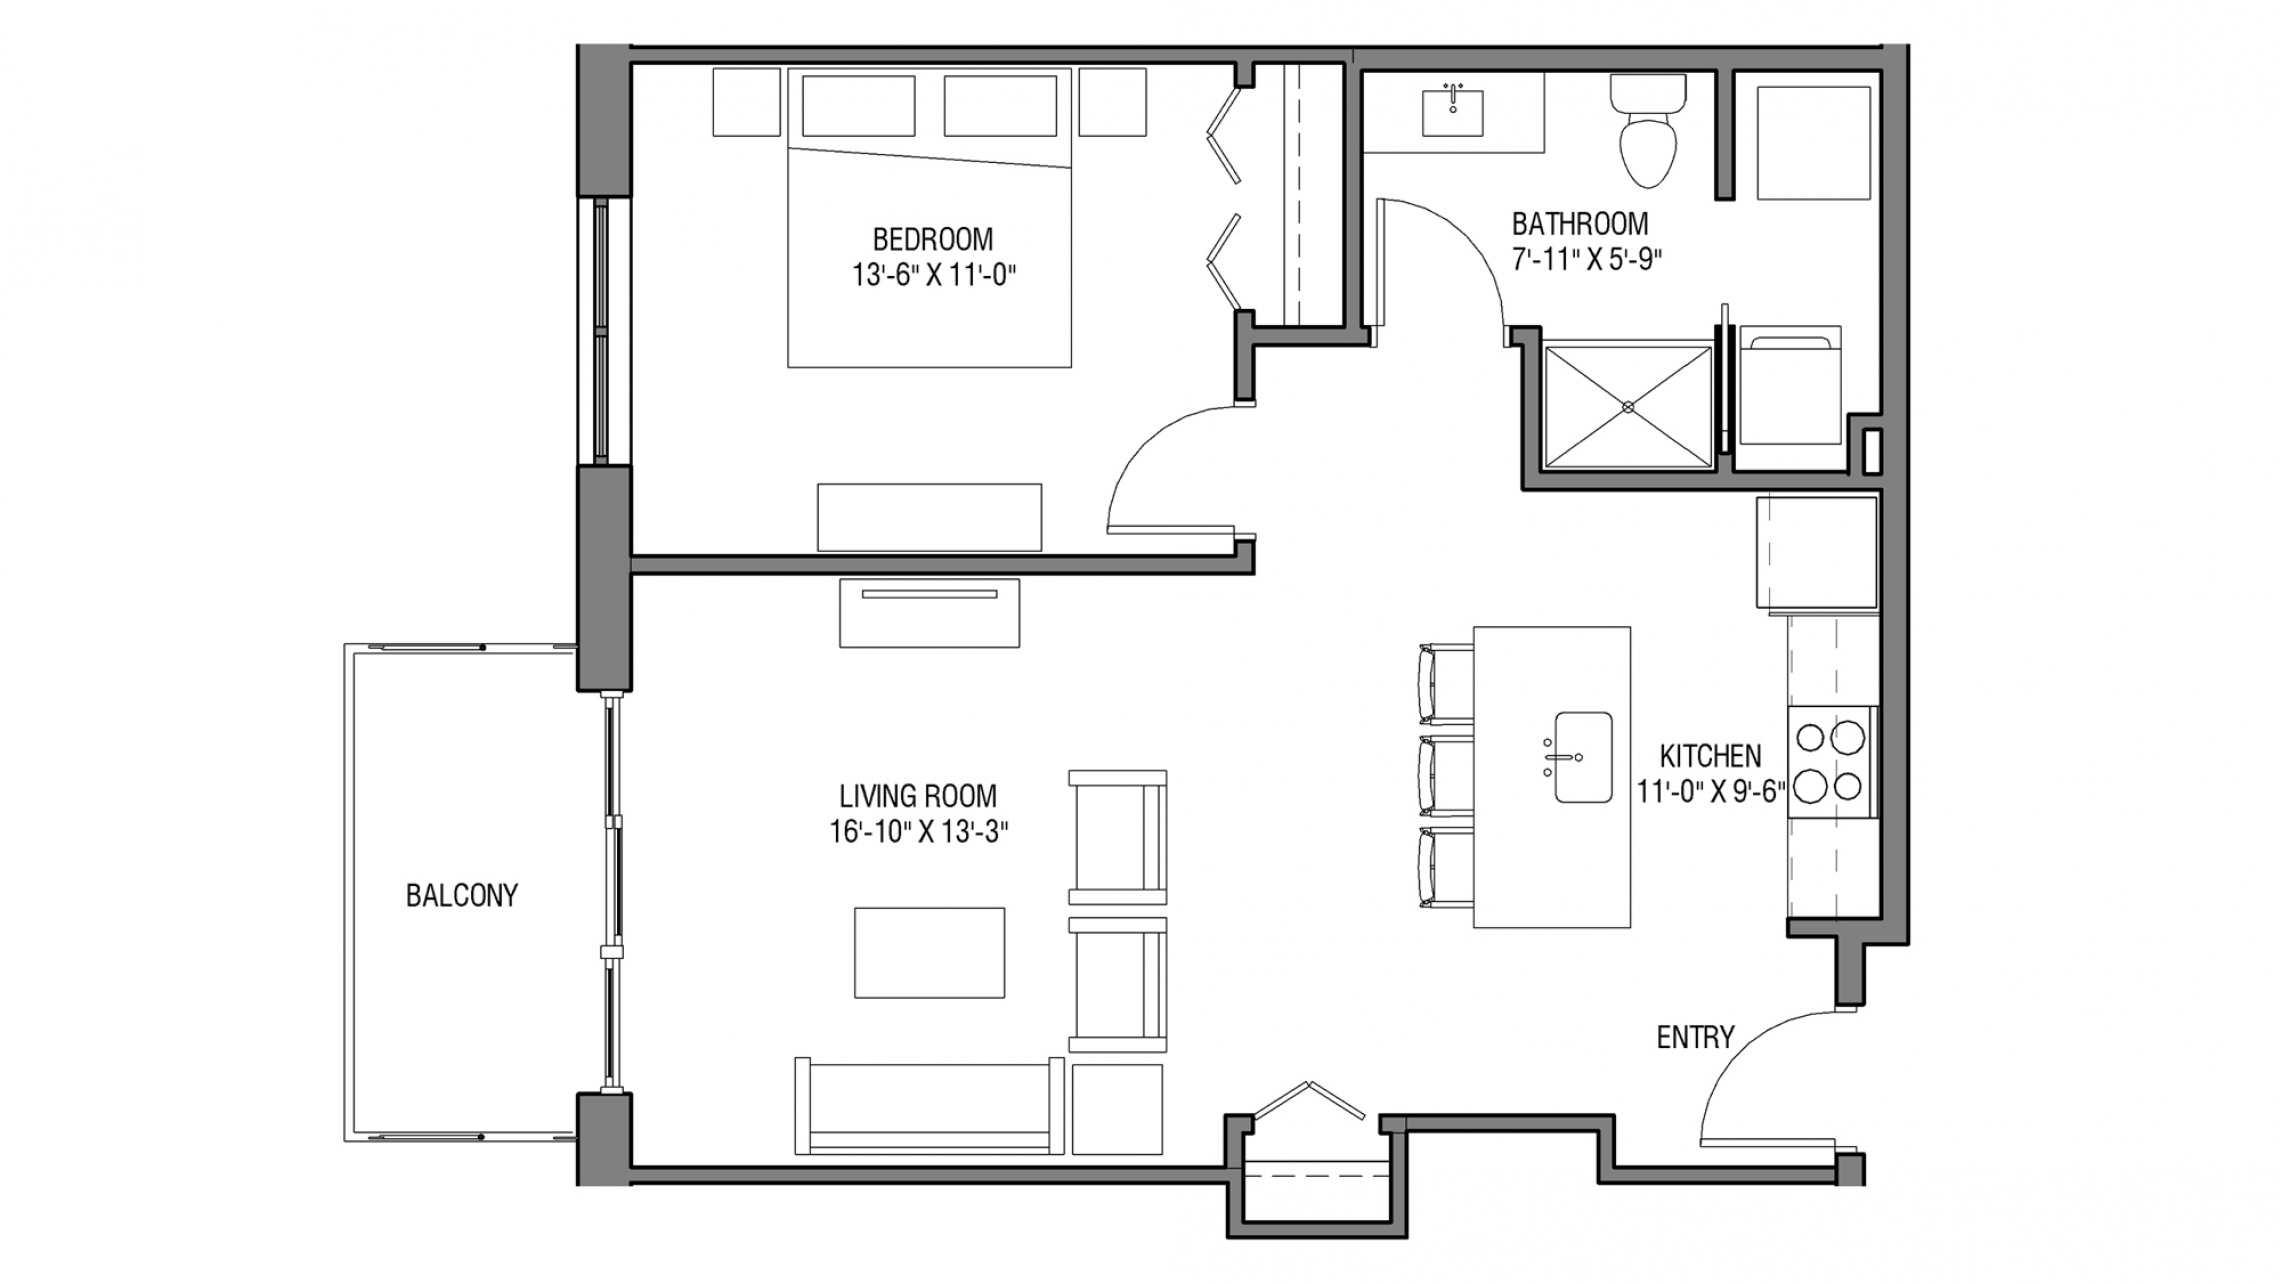 ULI Nine Line 419 - One Bedroom, One Bathroom